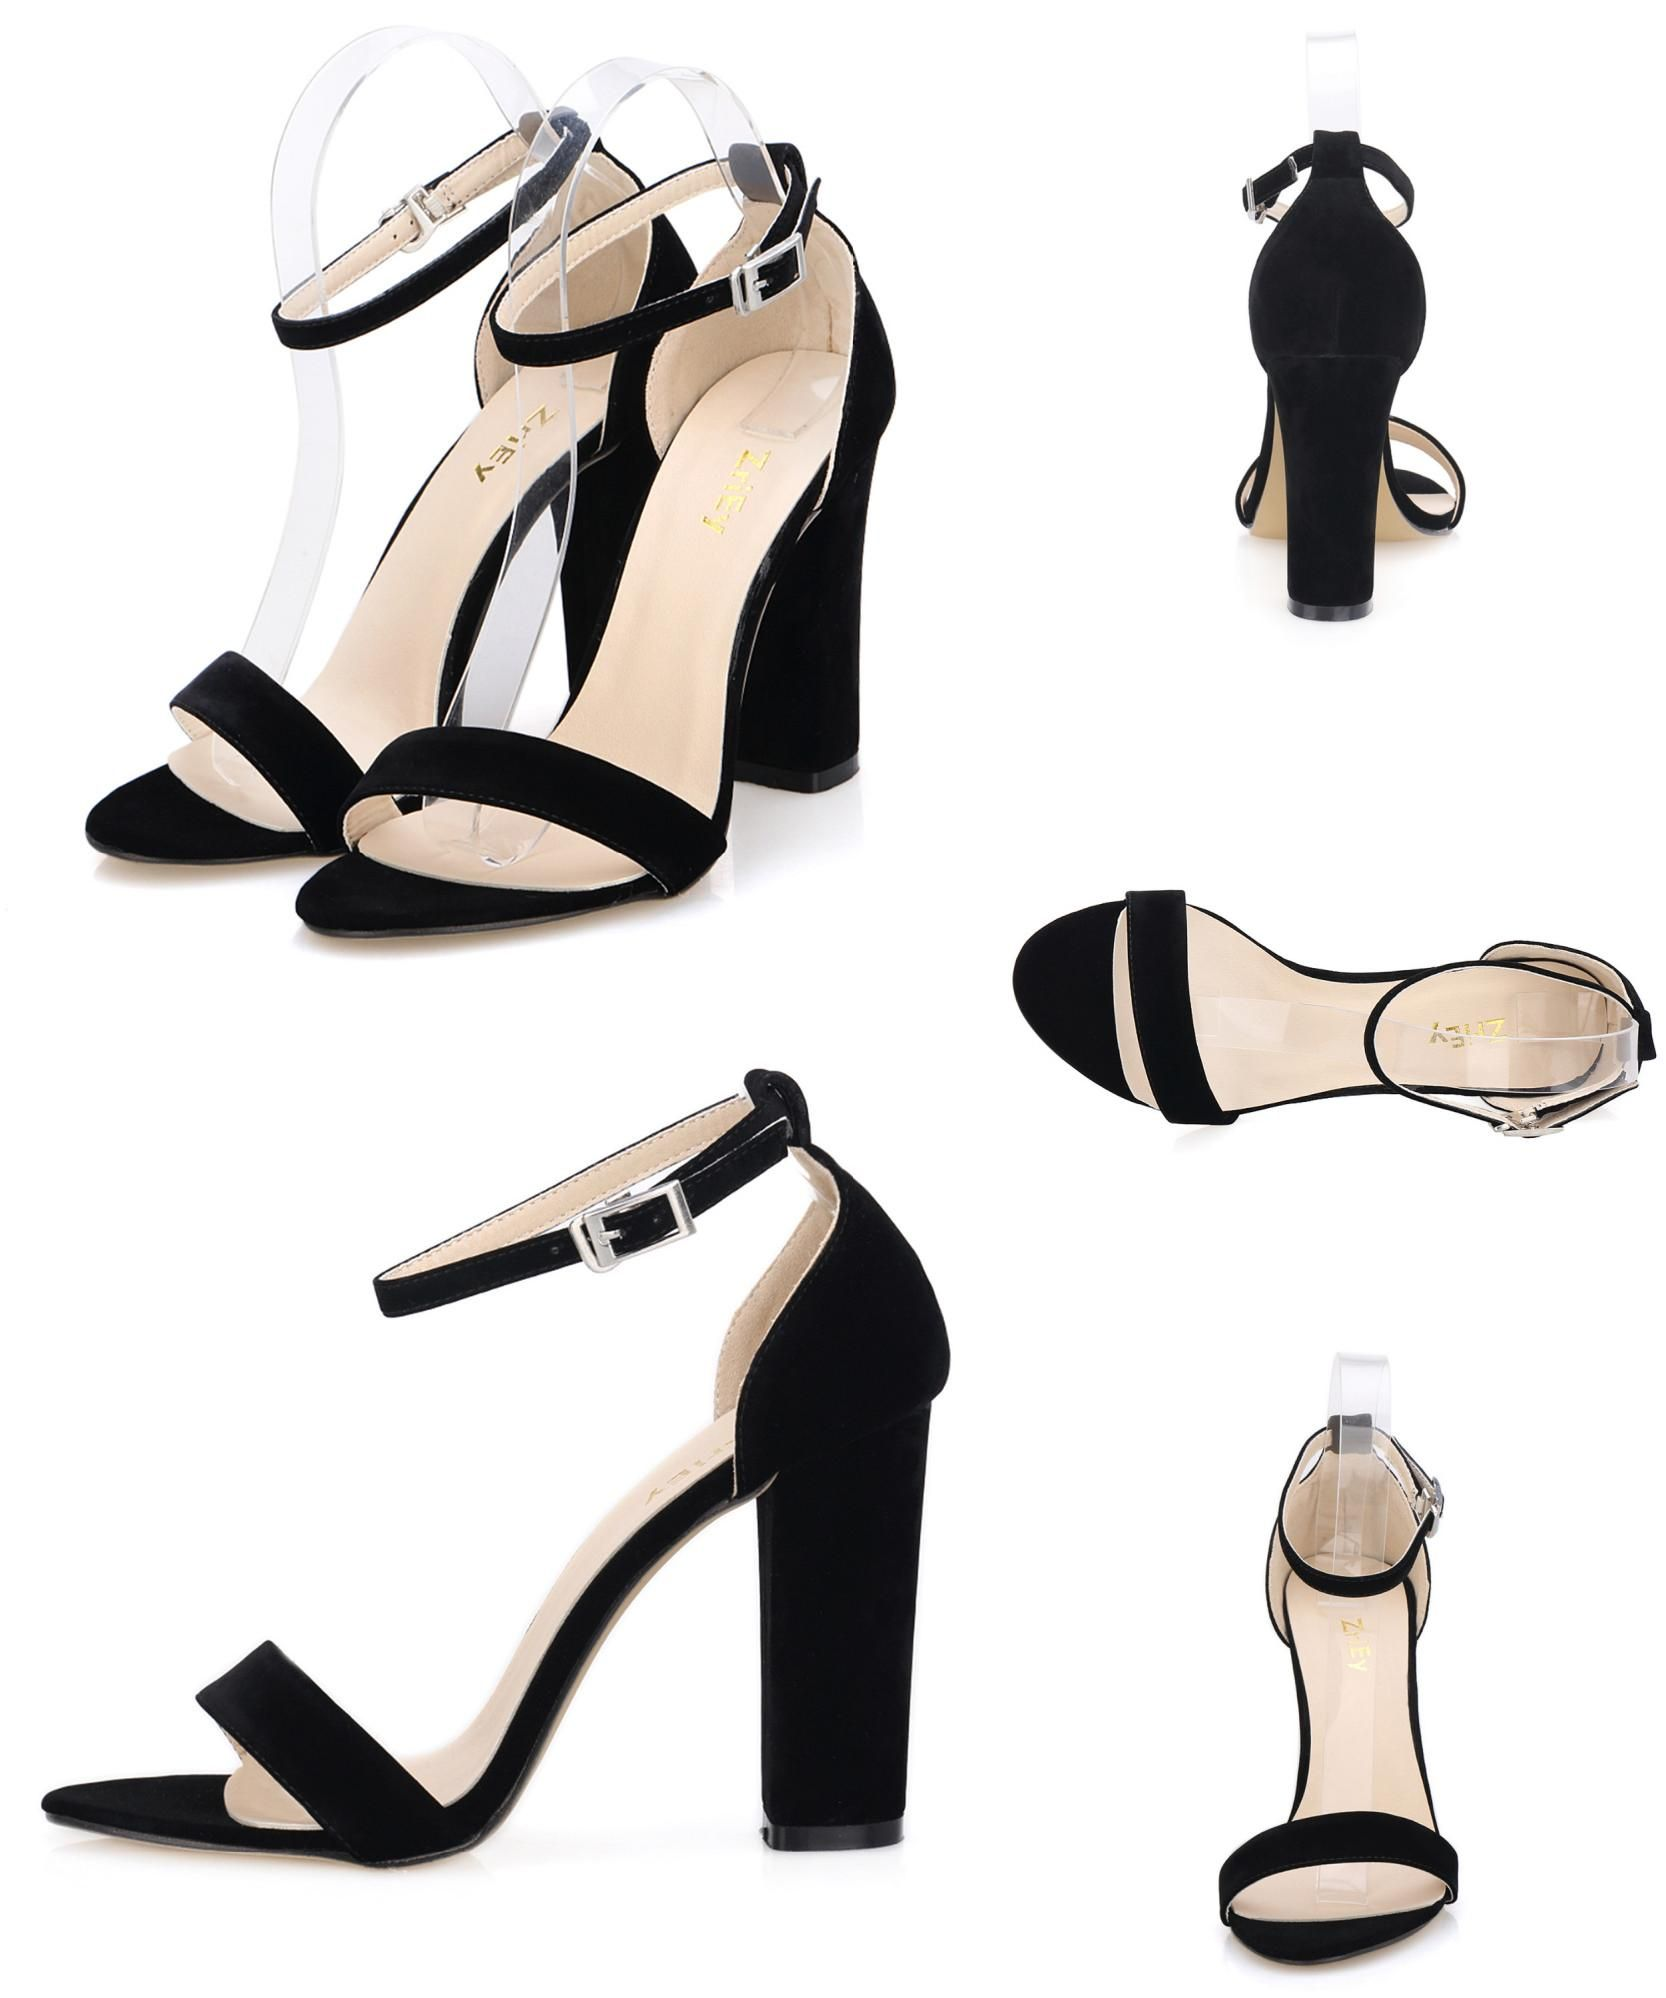 ea82cc388b Visit to Buy] LOSLANDIFEN Newest Women Open Toe Sexy Ankle Straps ...